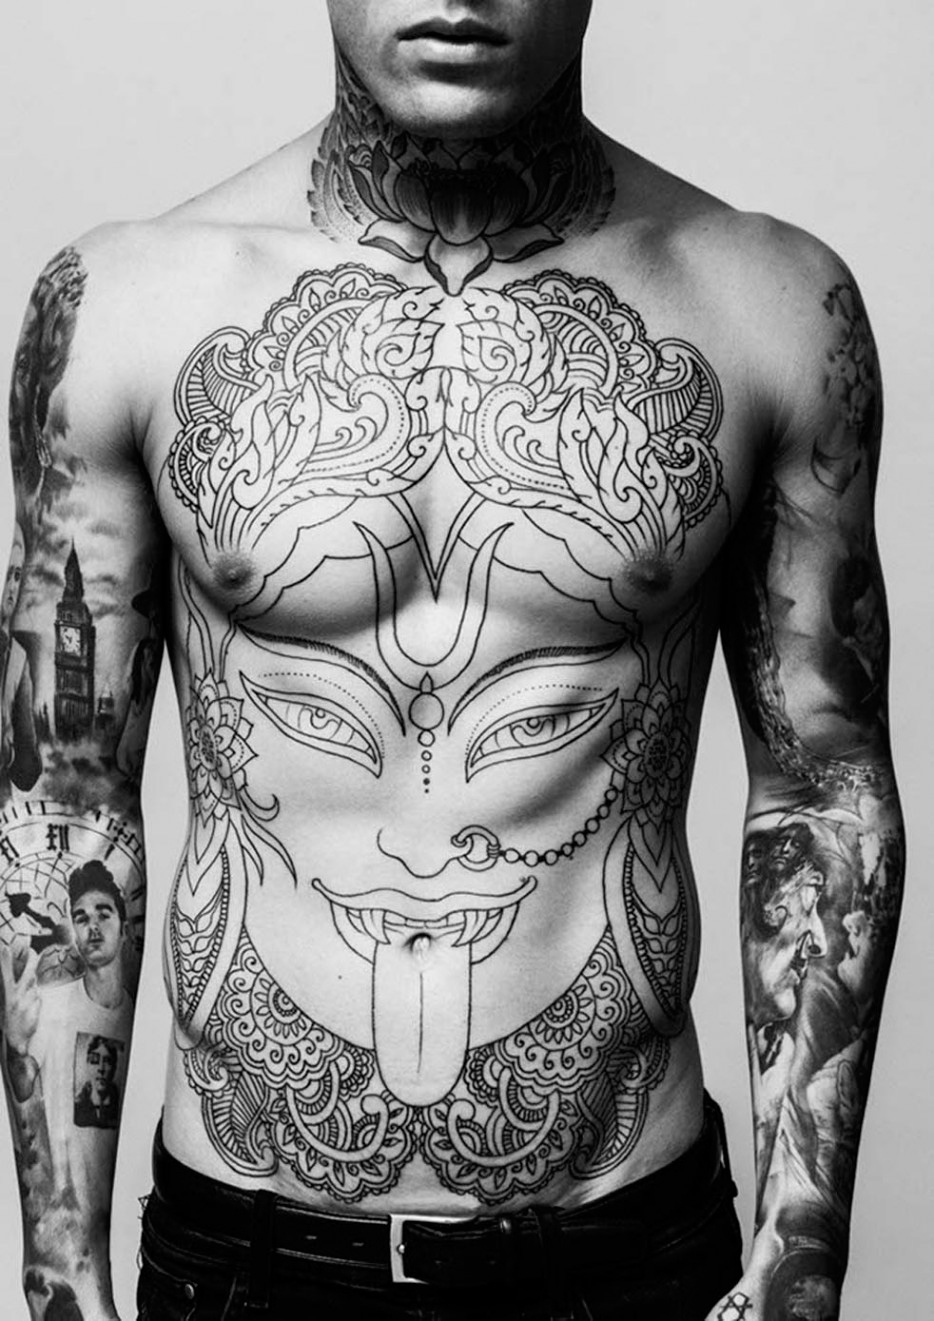 Private parts tattoo for men - Private Parts Tattoo For Men 58